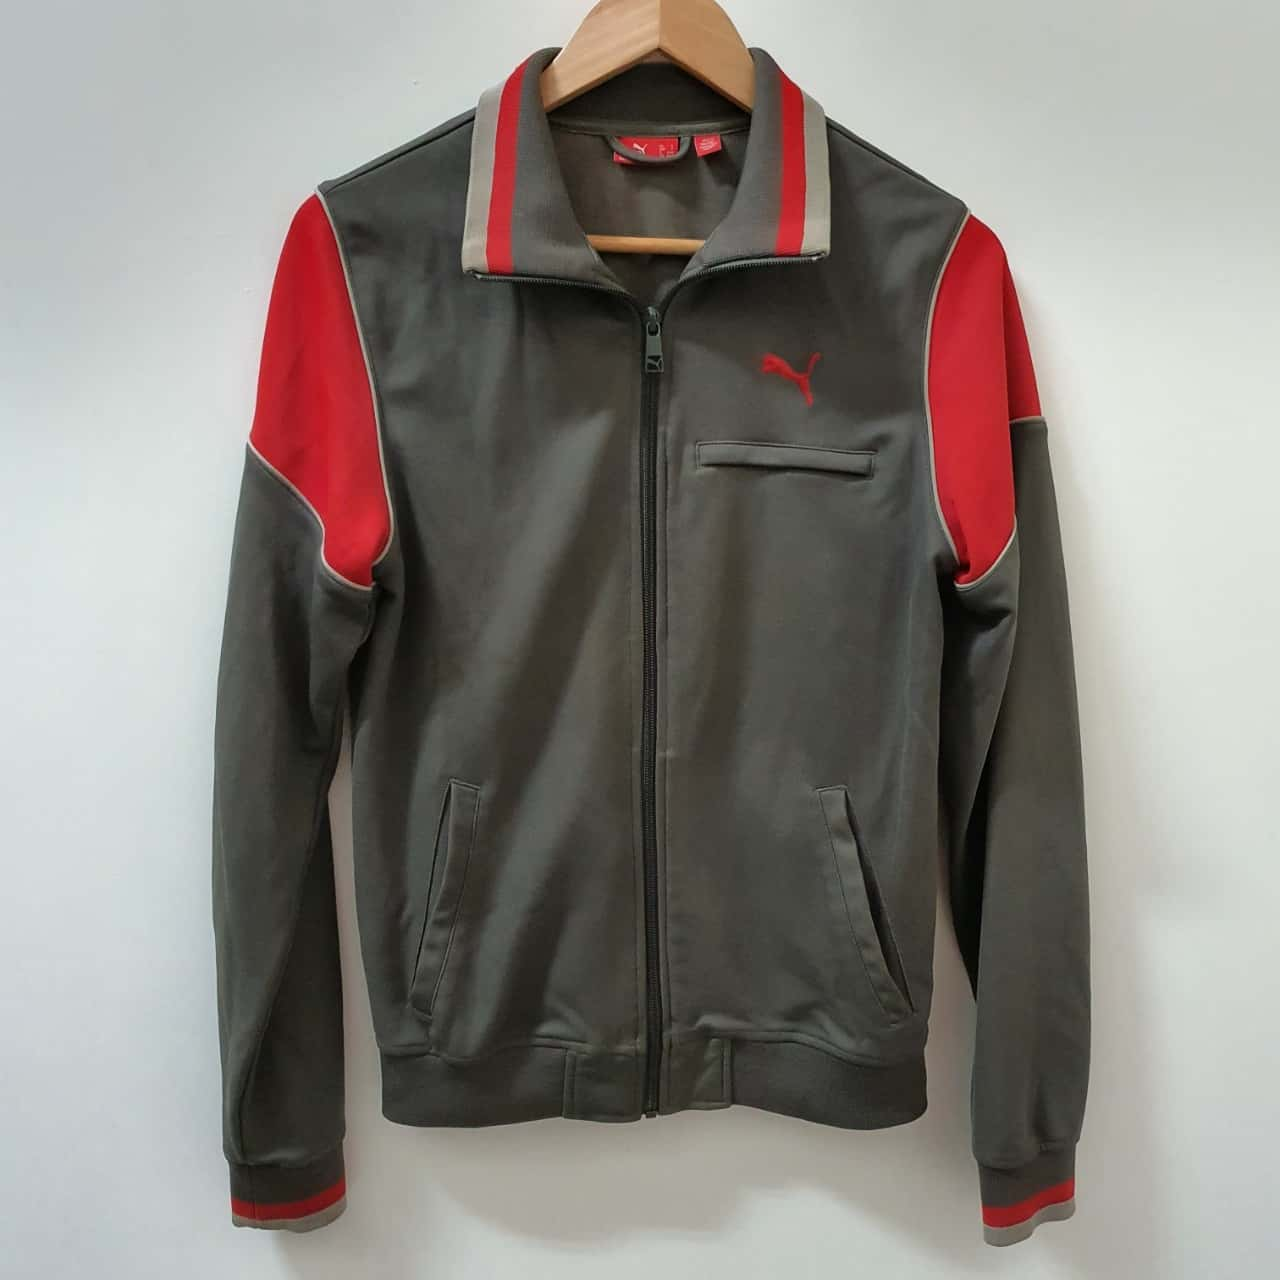 Men's 'Puma' Jacket - Size S